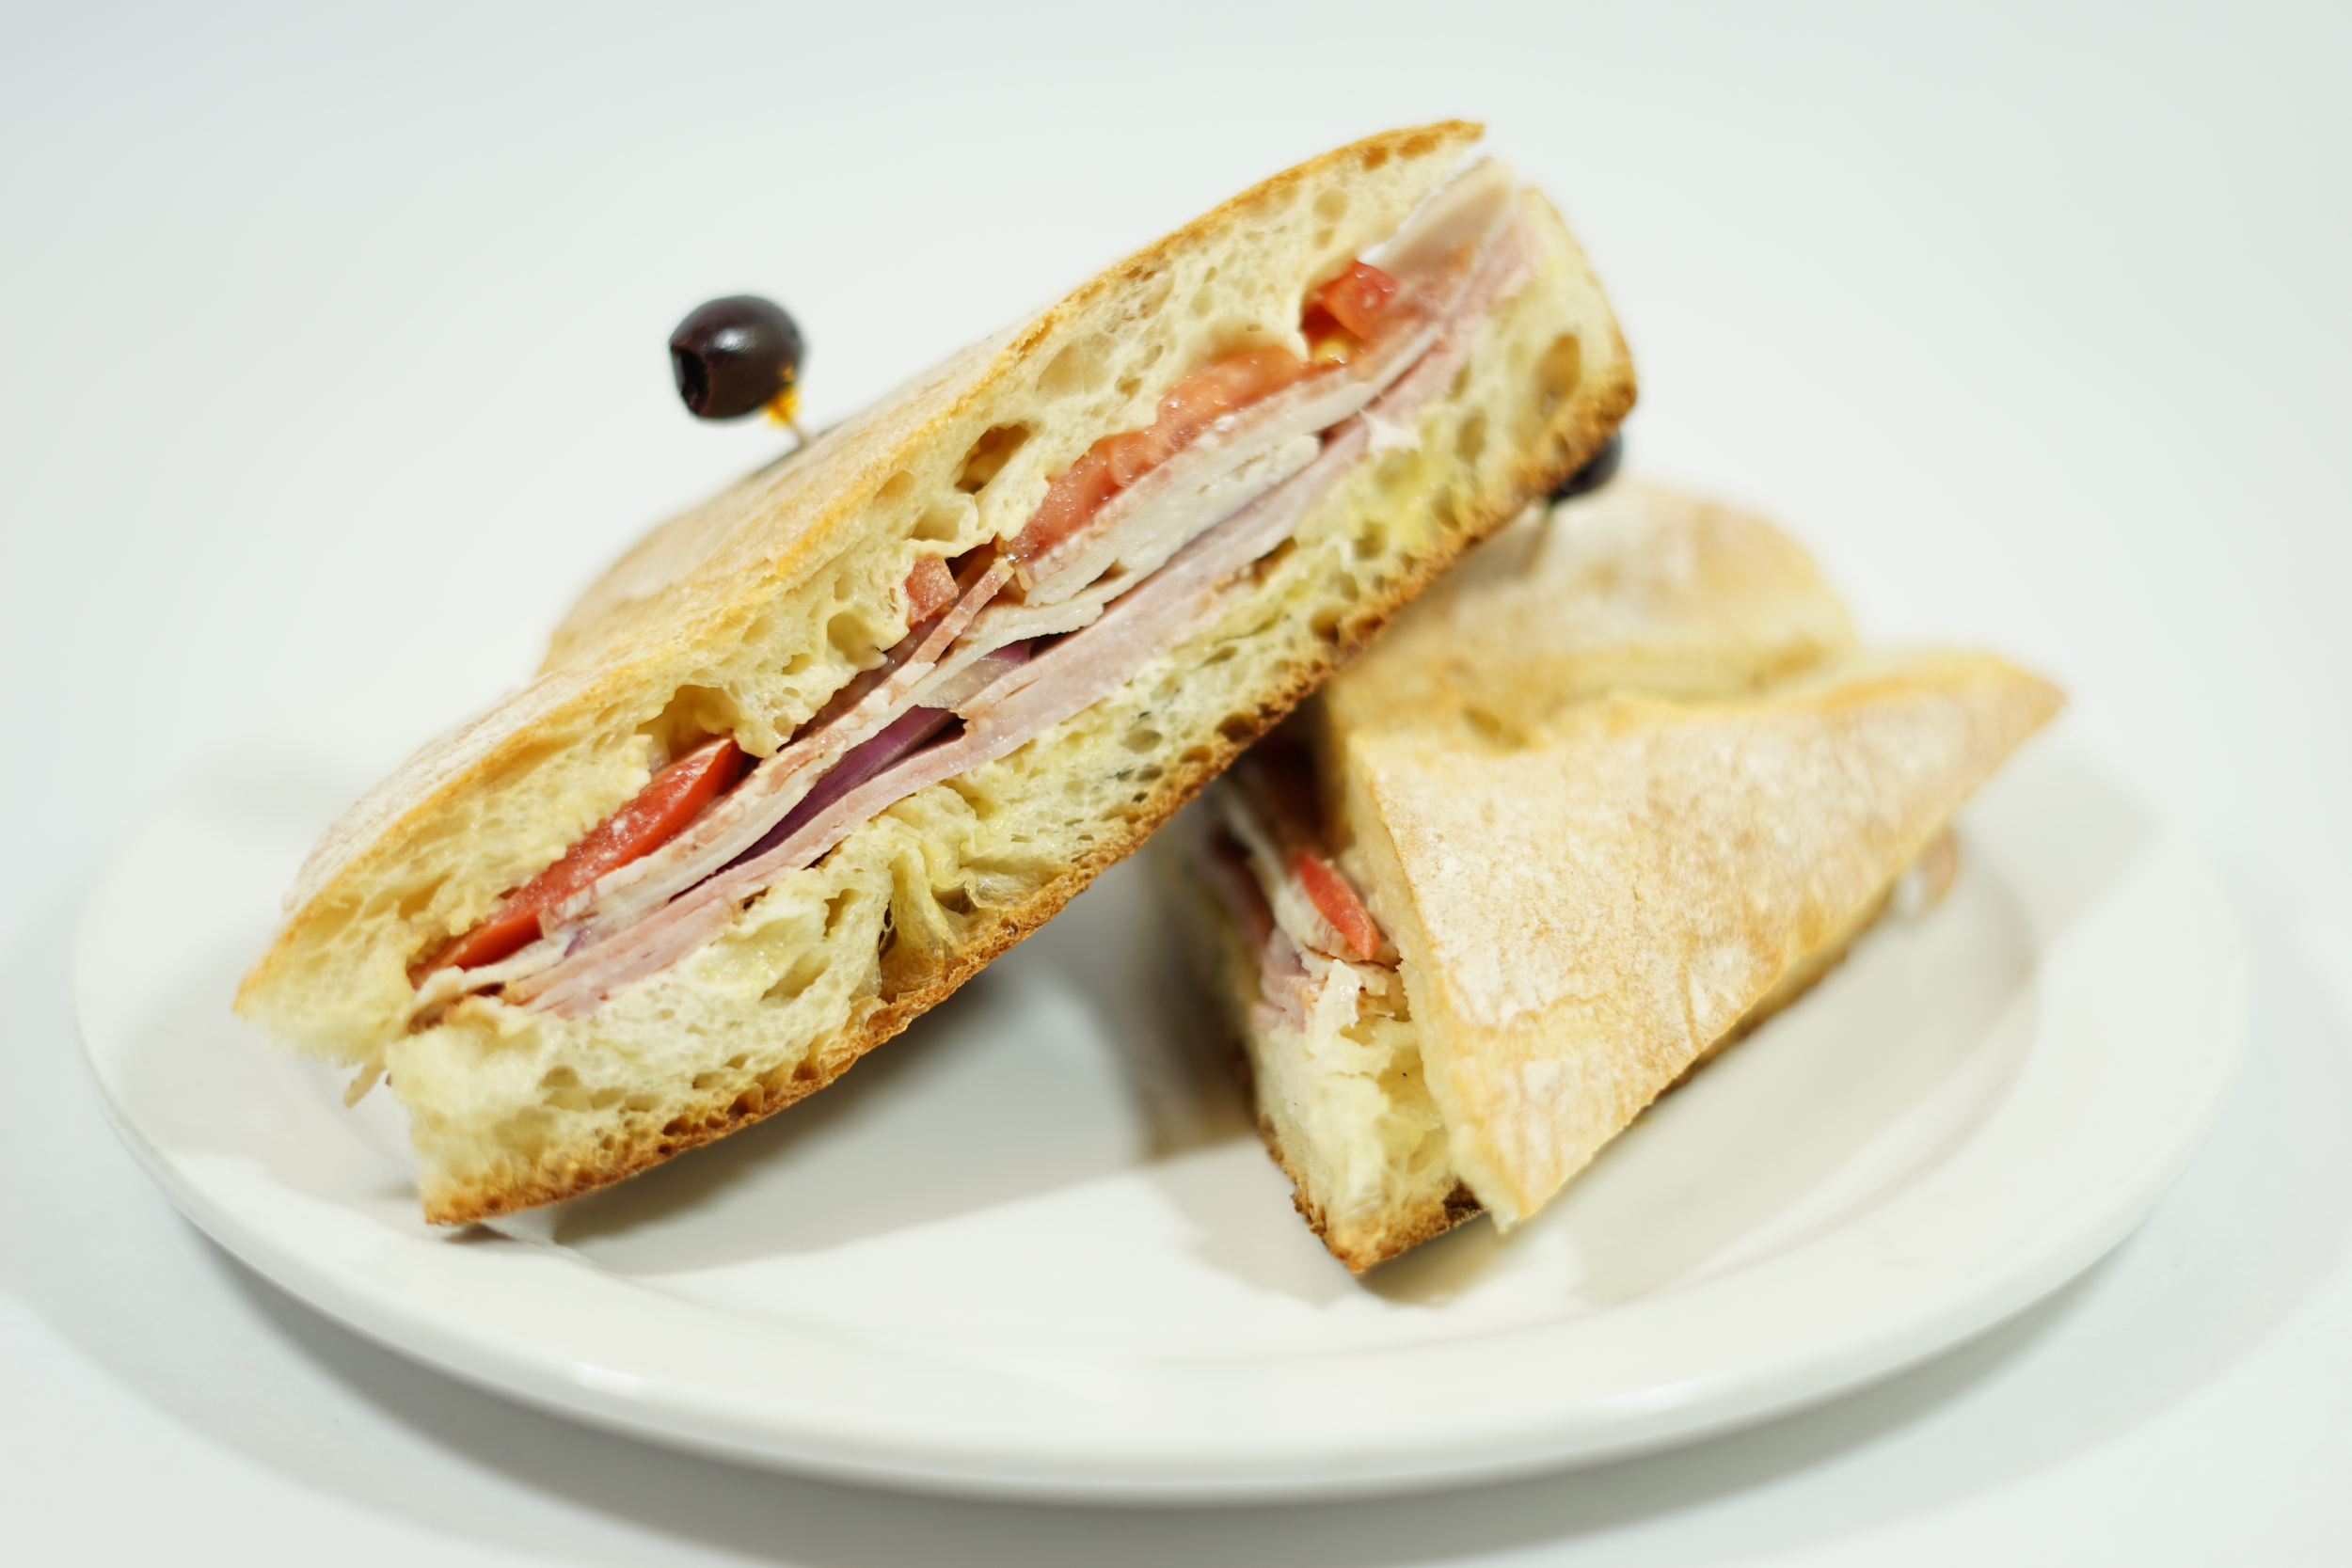 Monte Carlo - On Provencal bread with Dijon mayo spread, sliced tomatoes, onions, turkey, ham, salami, and drizzled with Dijon vinaigrette dressing.